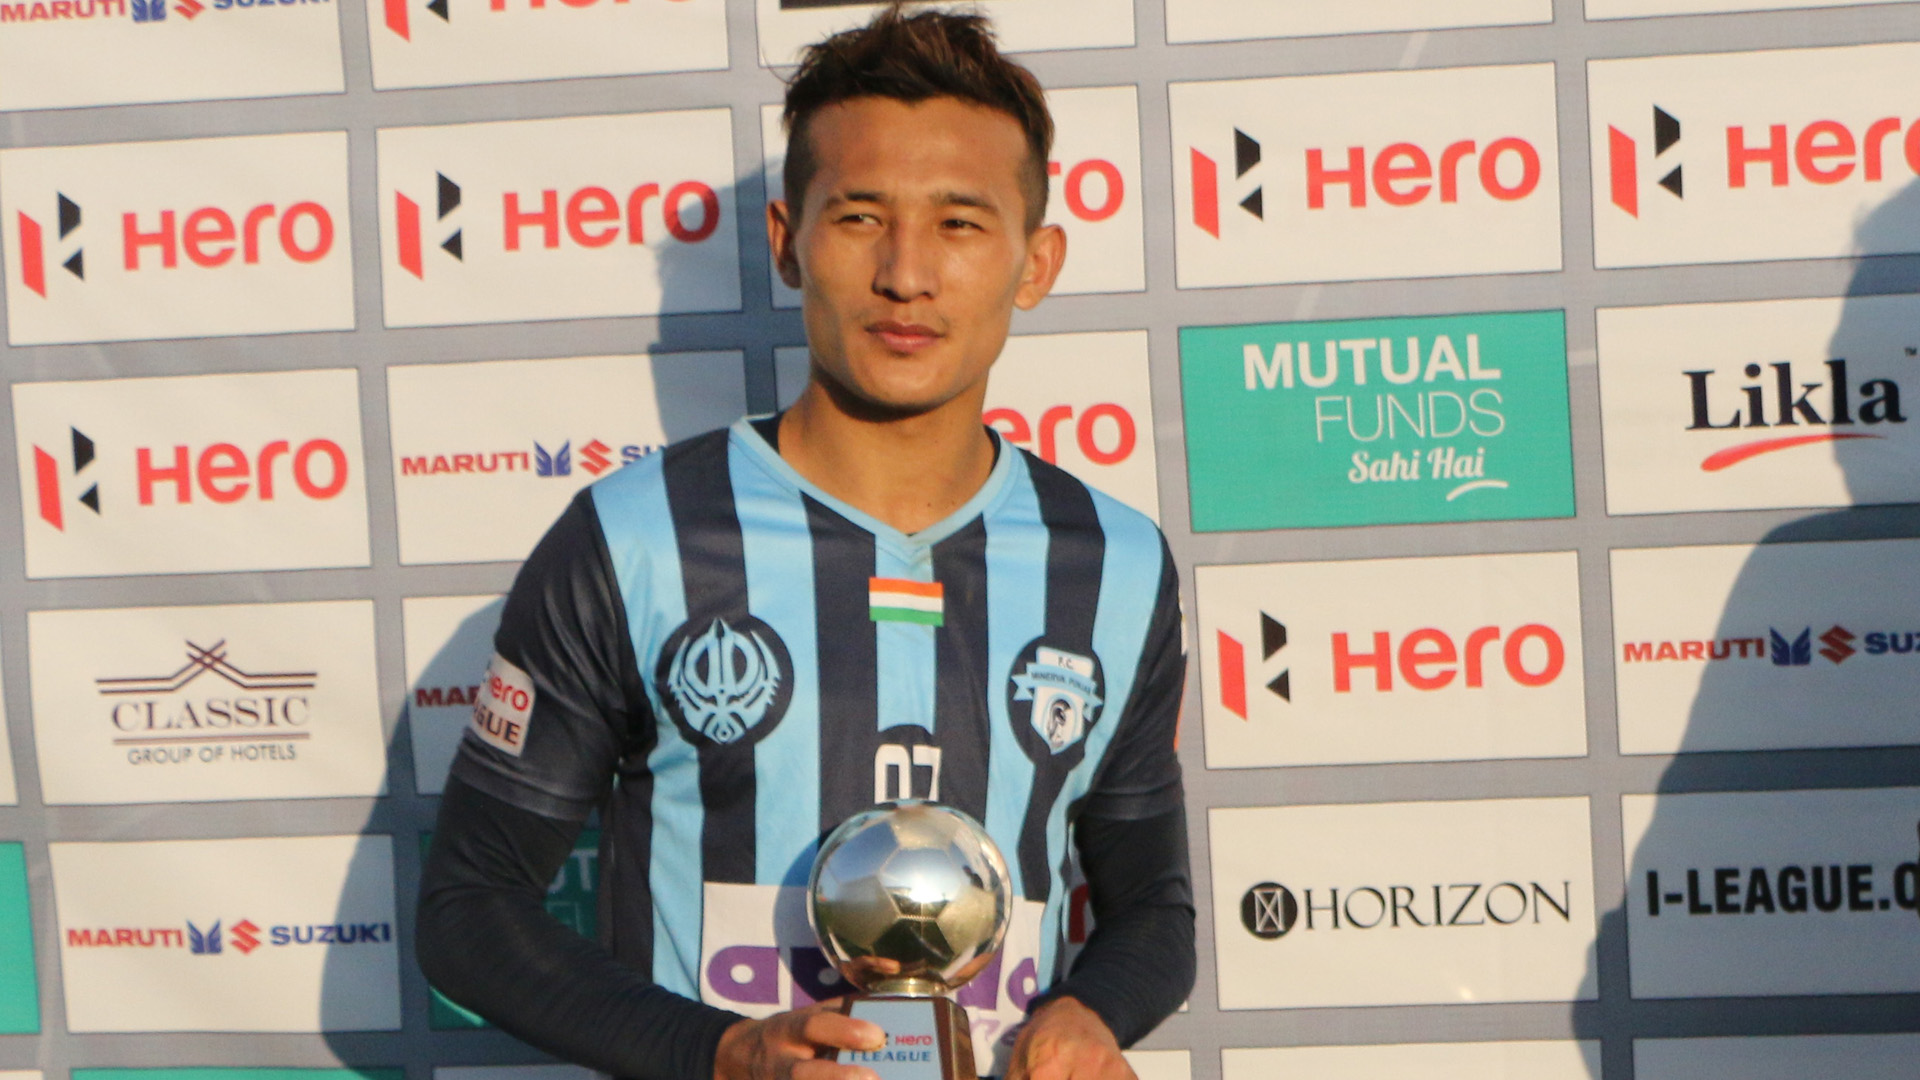 Minerva crowned Indian I-League champions in fairy tale season finish